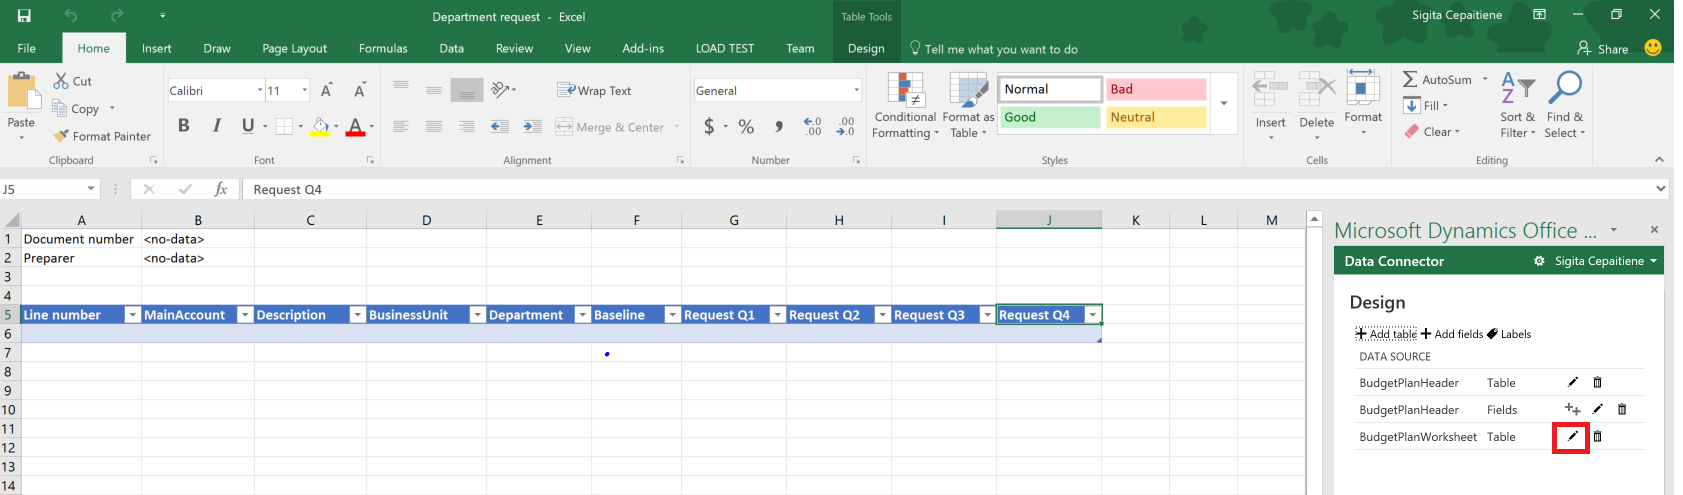 Budget Planning Templates For Excel   Finance & Operations ... Inside Data Spreadsheet Template 5